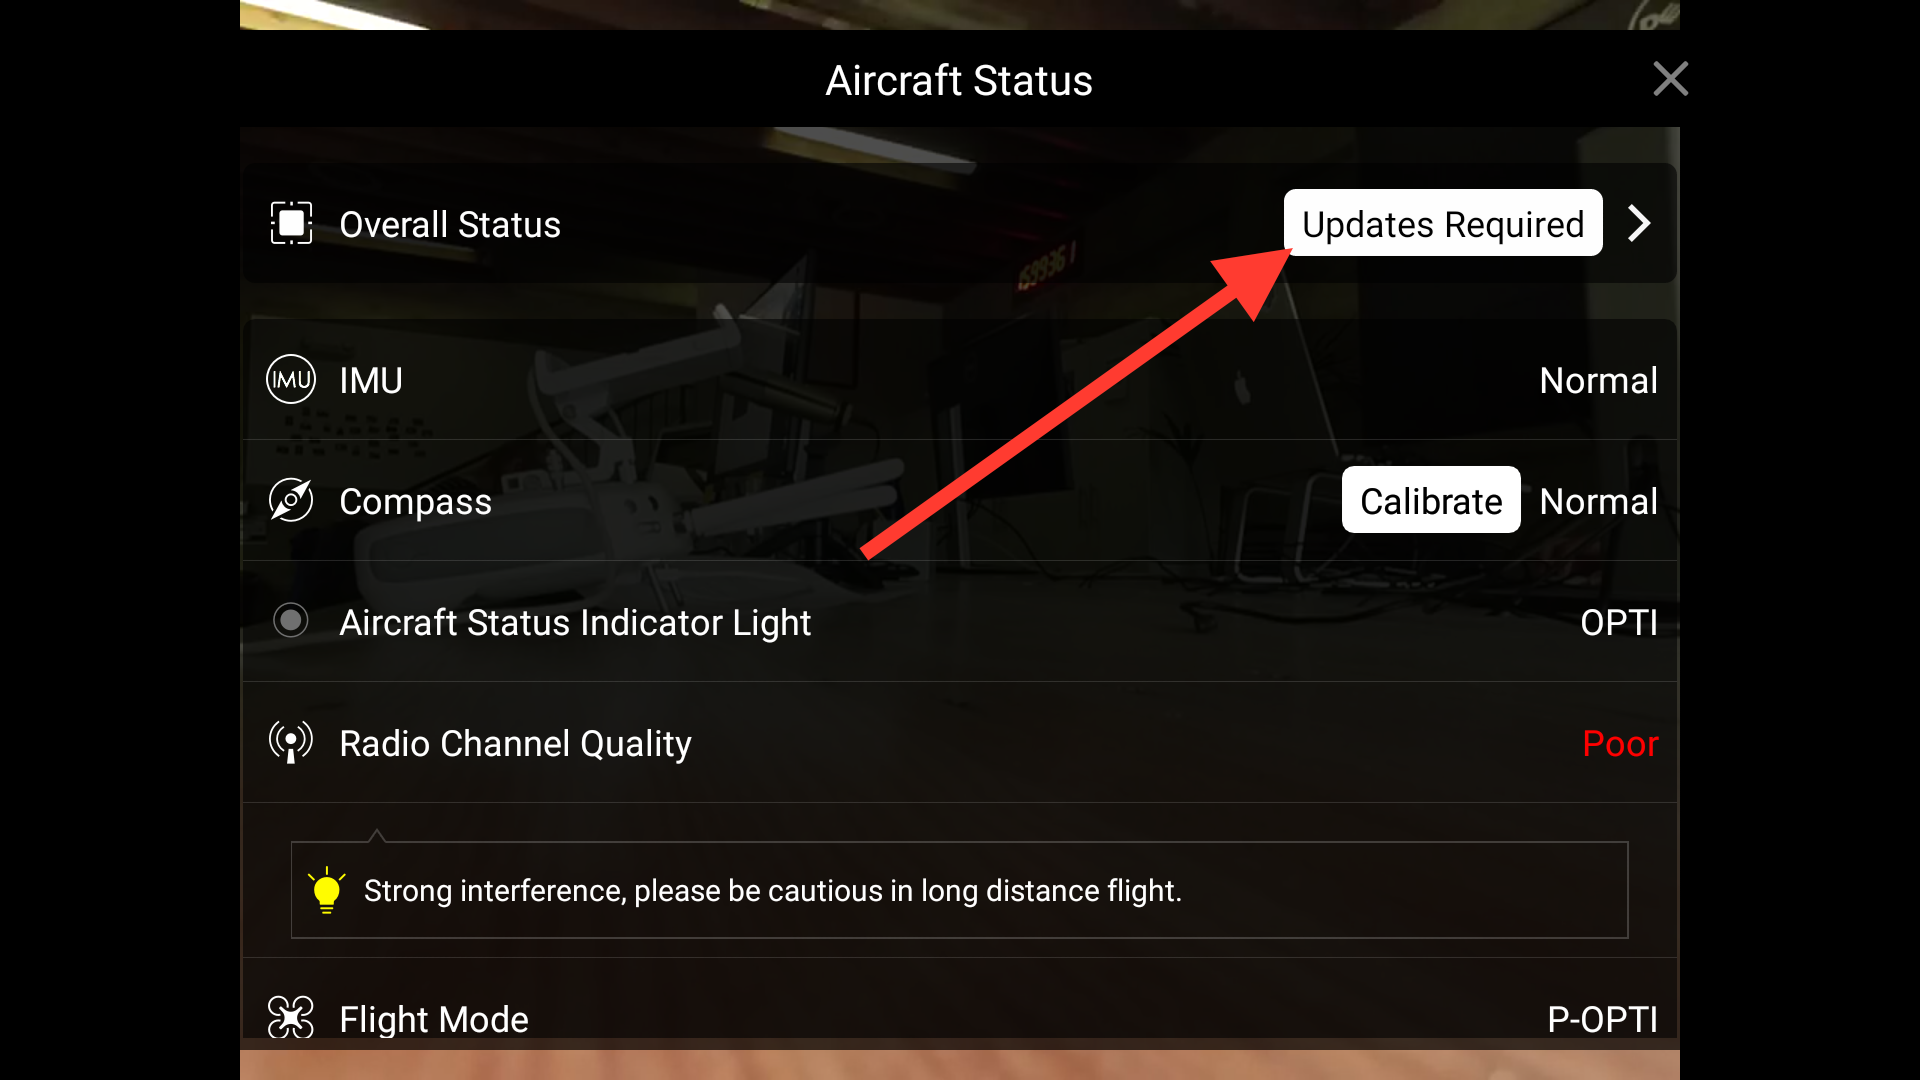 You can clearly see that this drone requires an update to continue flying.